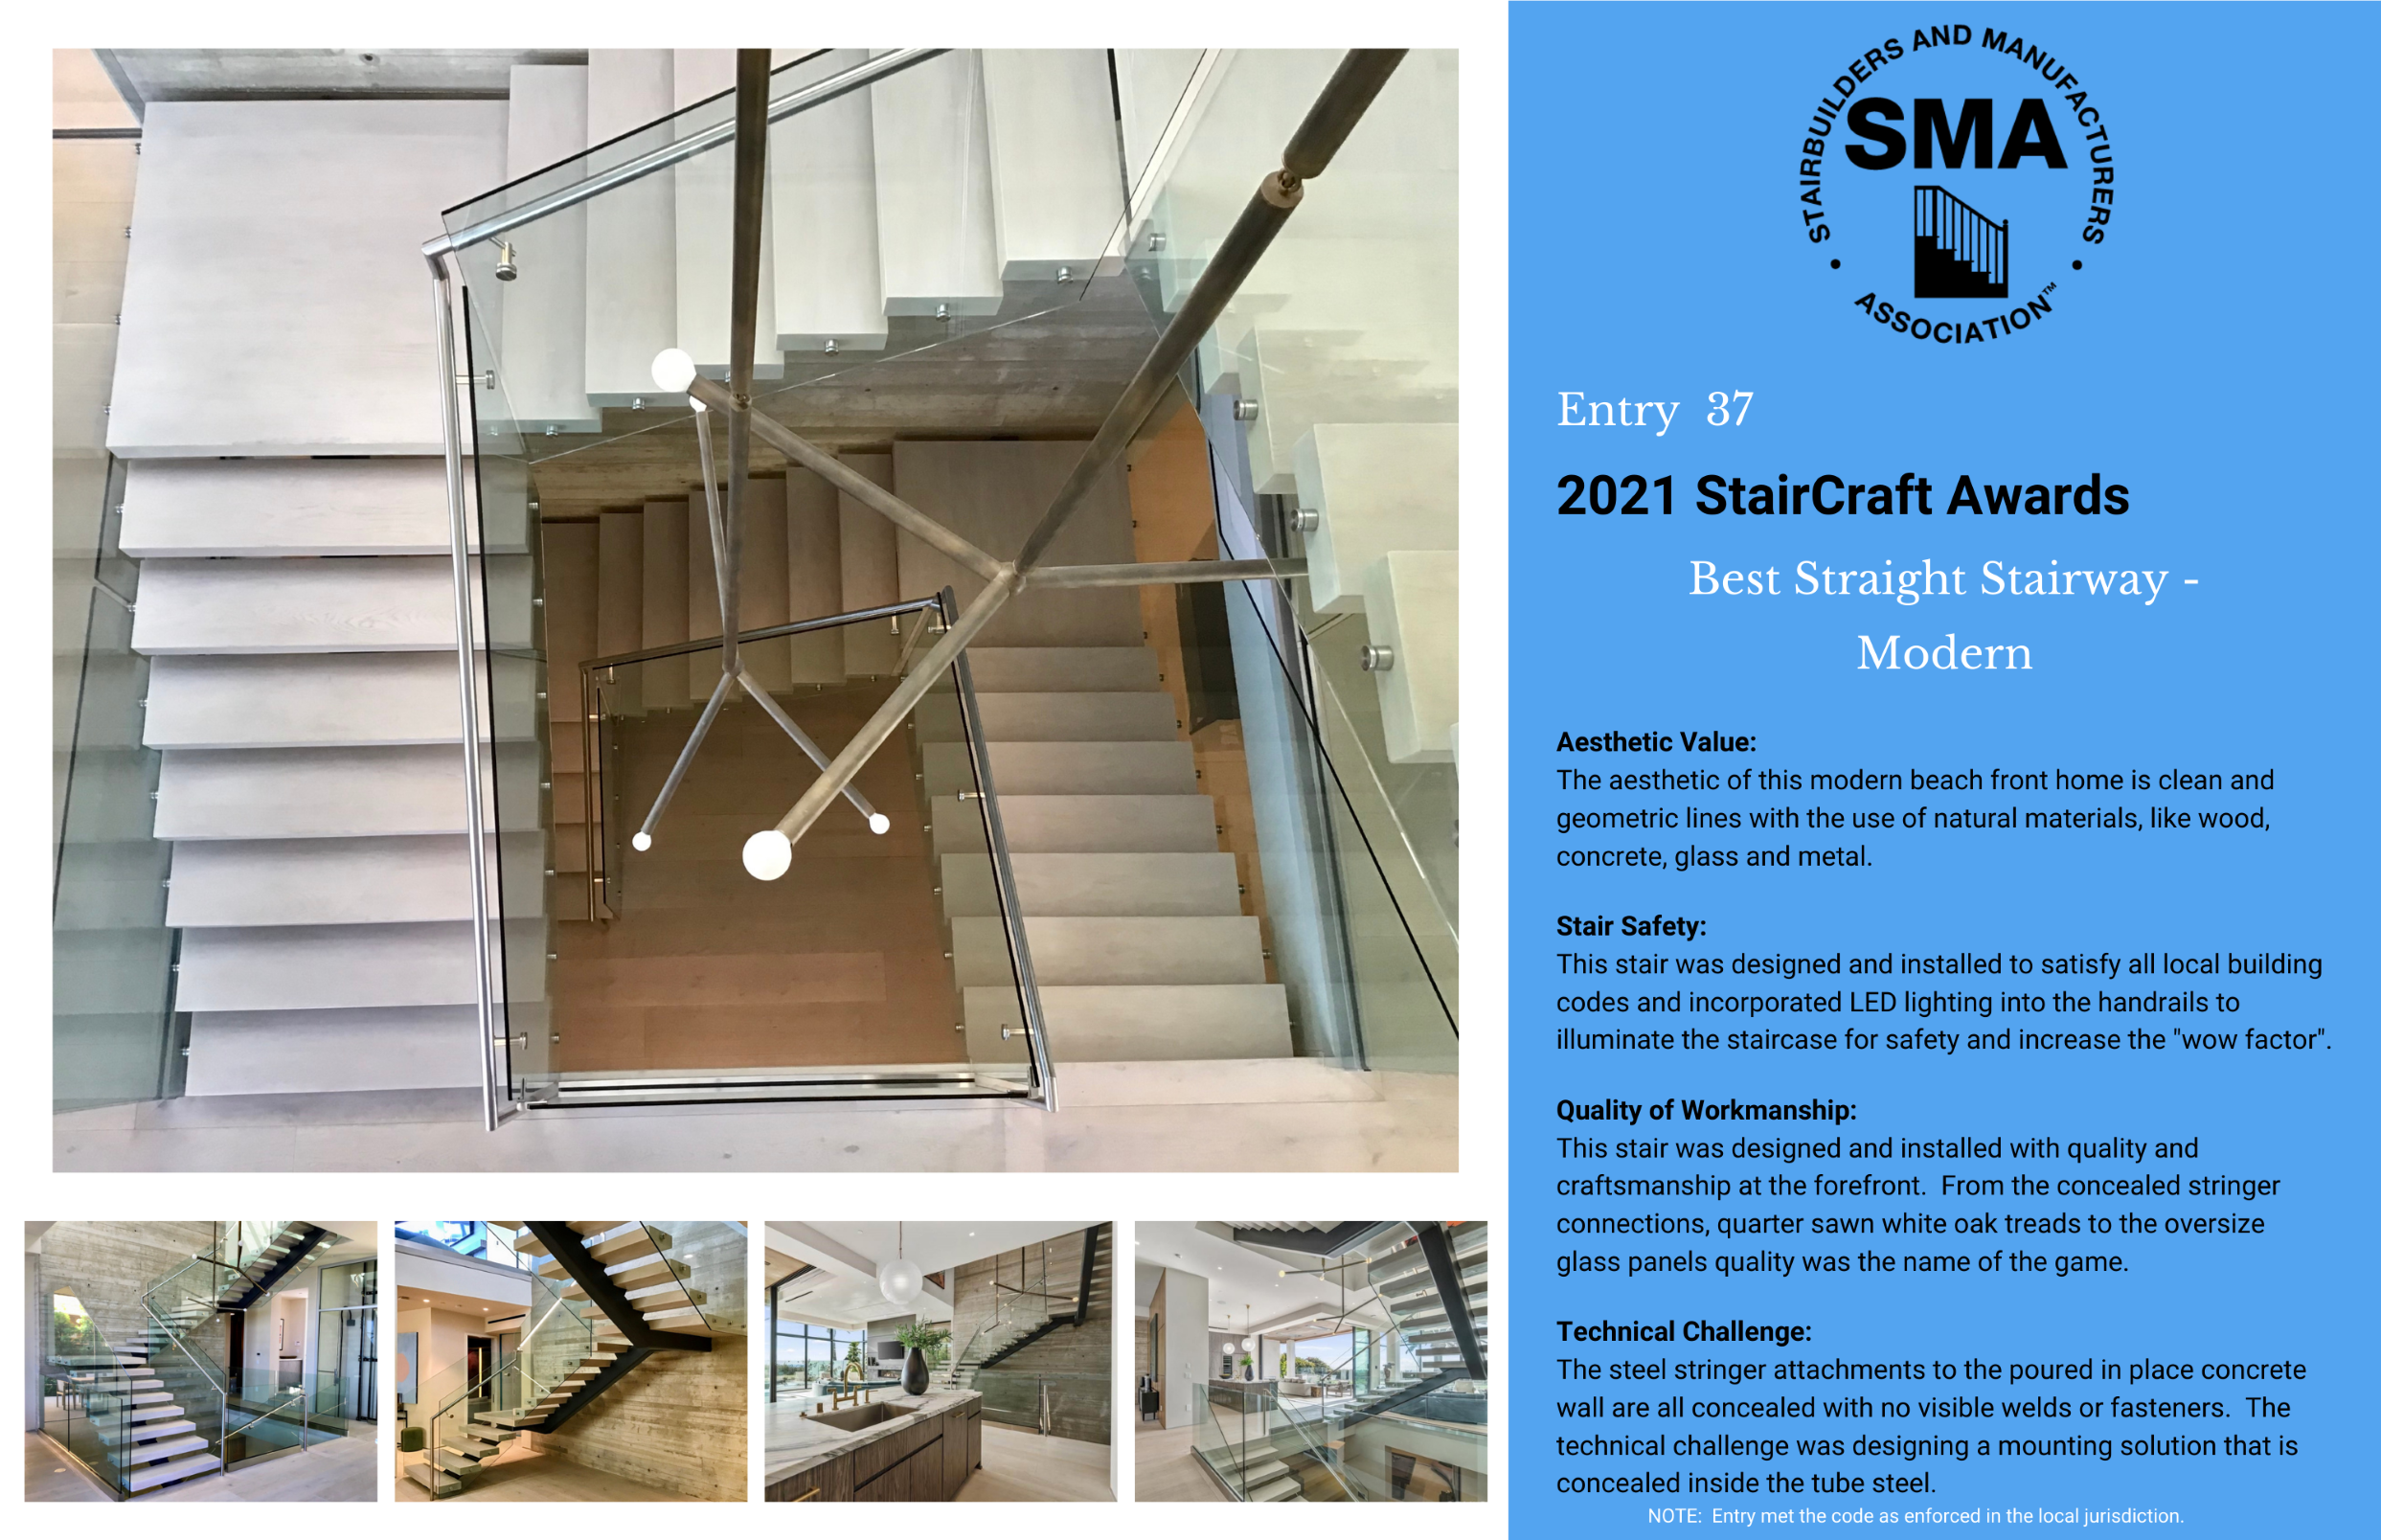 2021 StairCraft Awards Entry 37